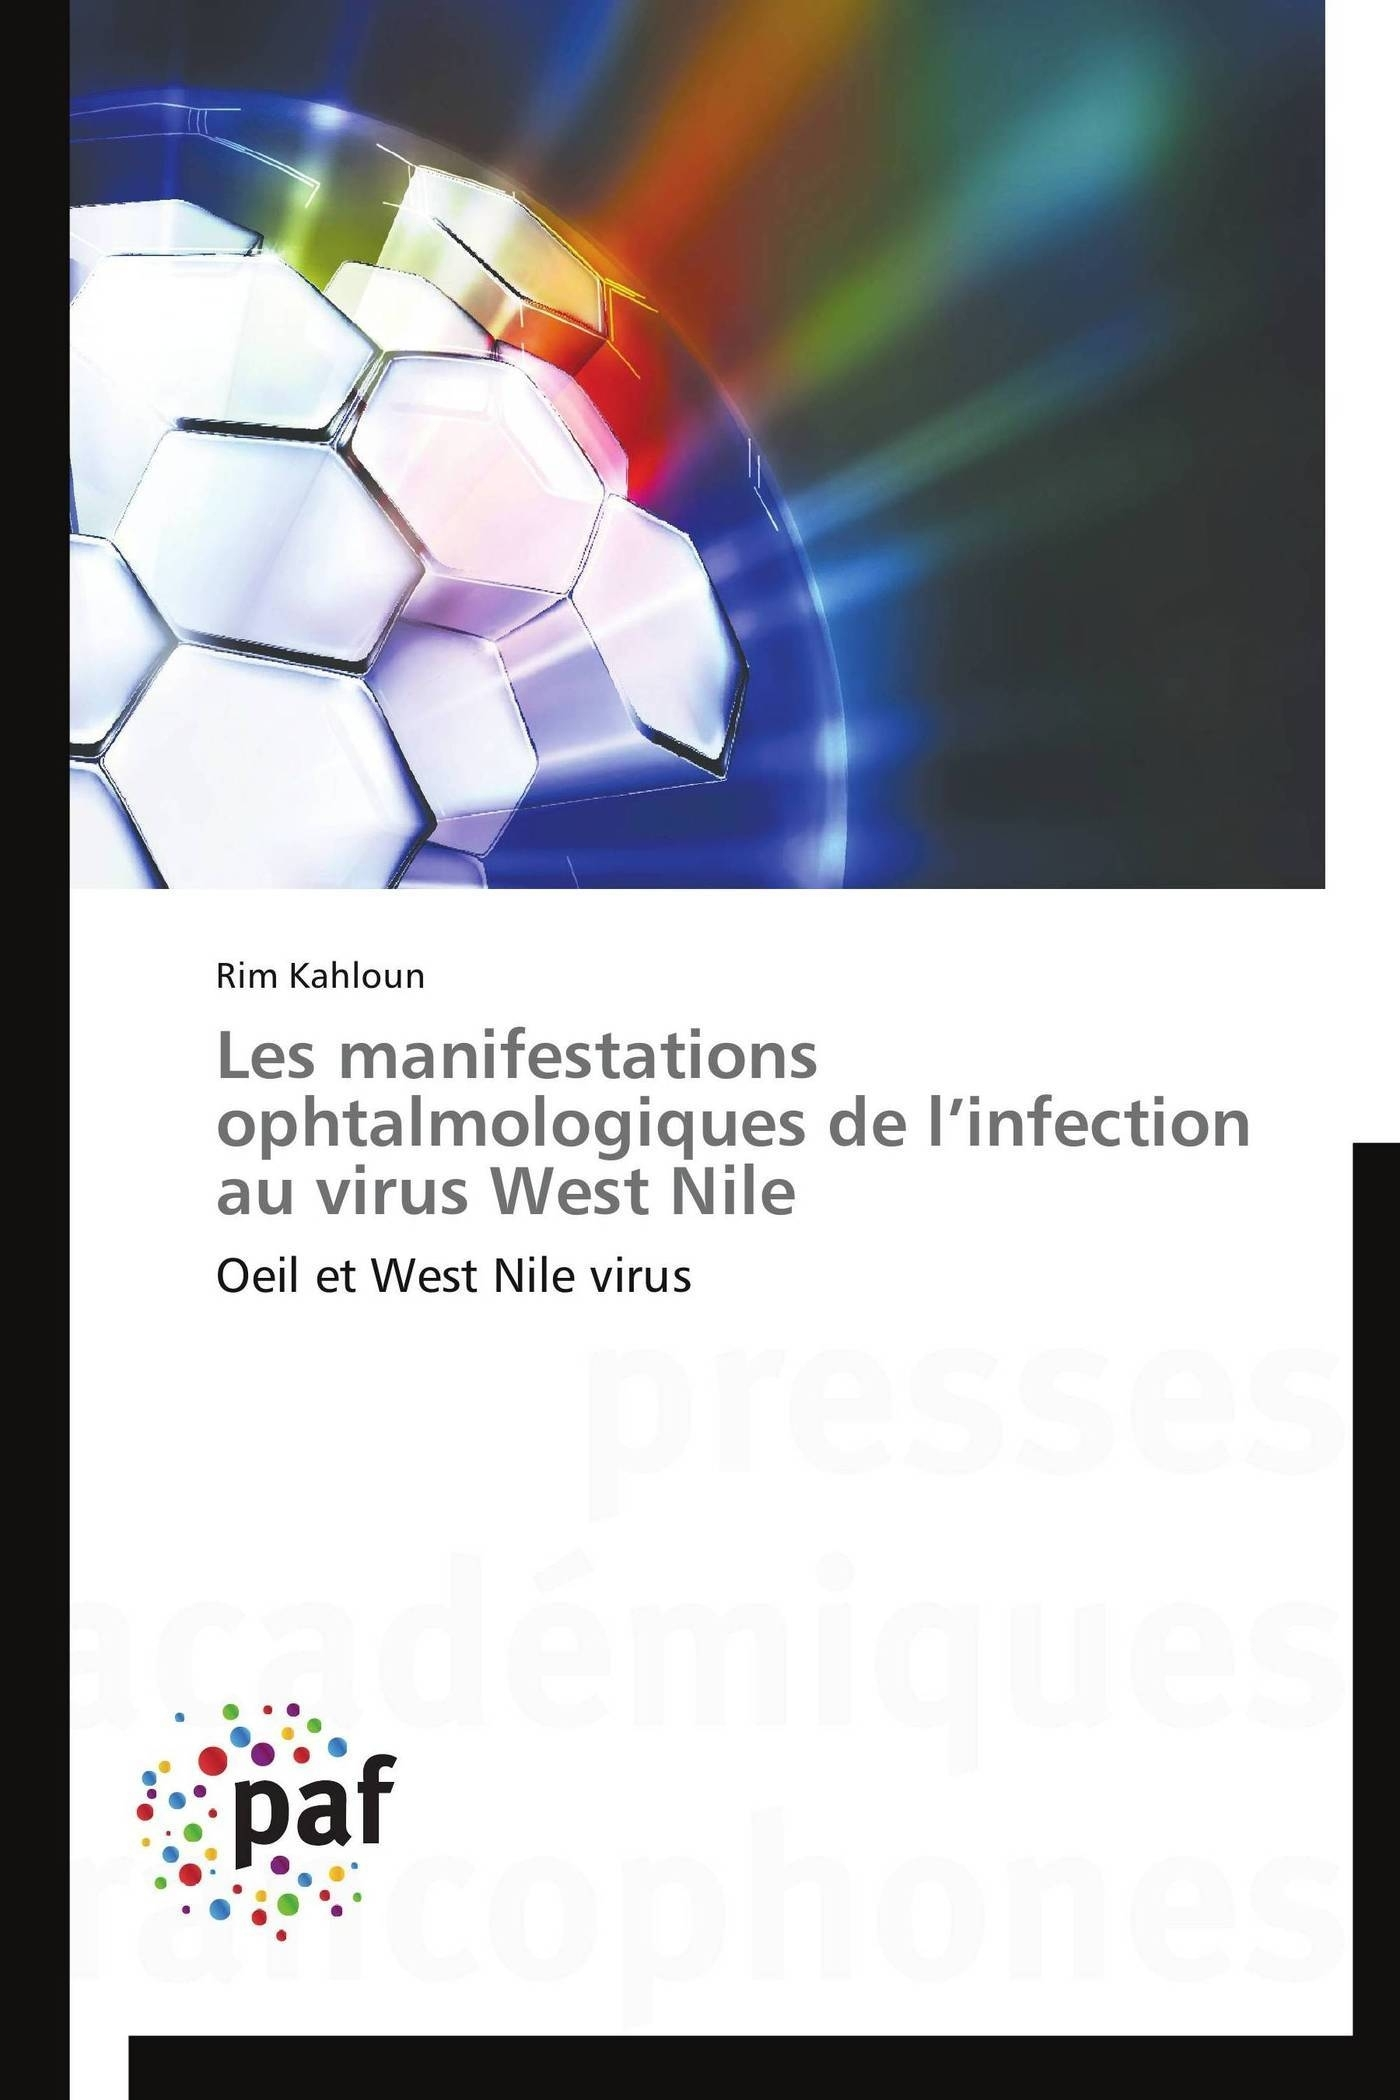 LES MANIFESTATIONS OPHTALMOLOGIQUES DE L INFECTION AU VIRUS WEST NILE